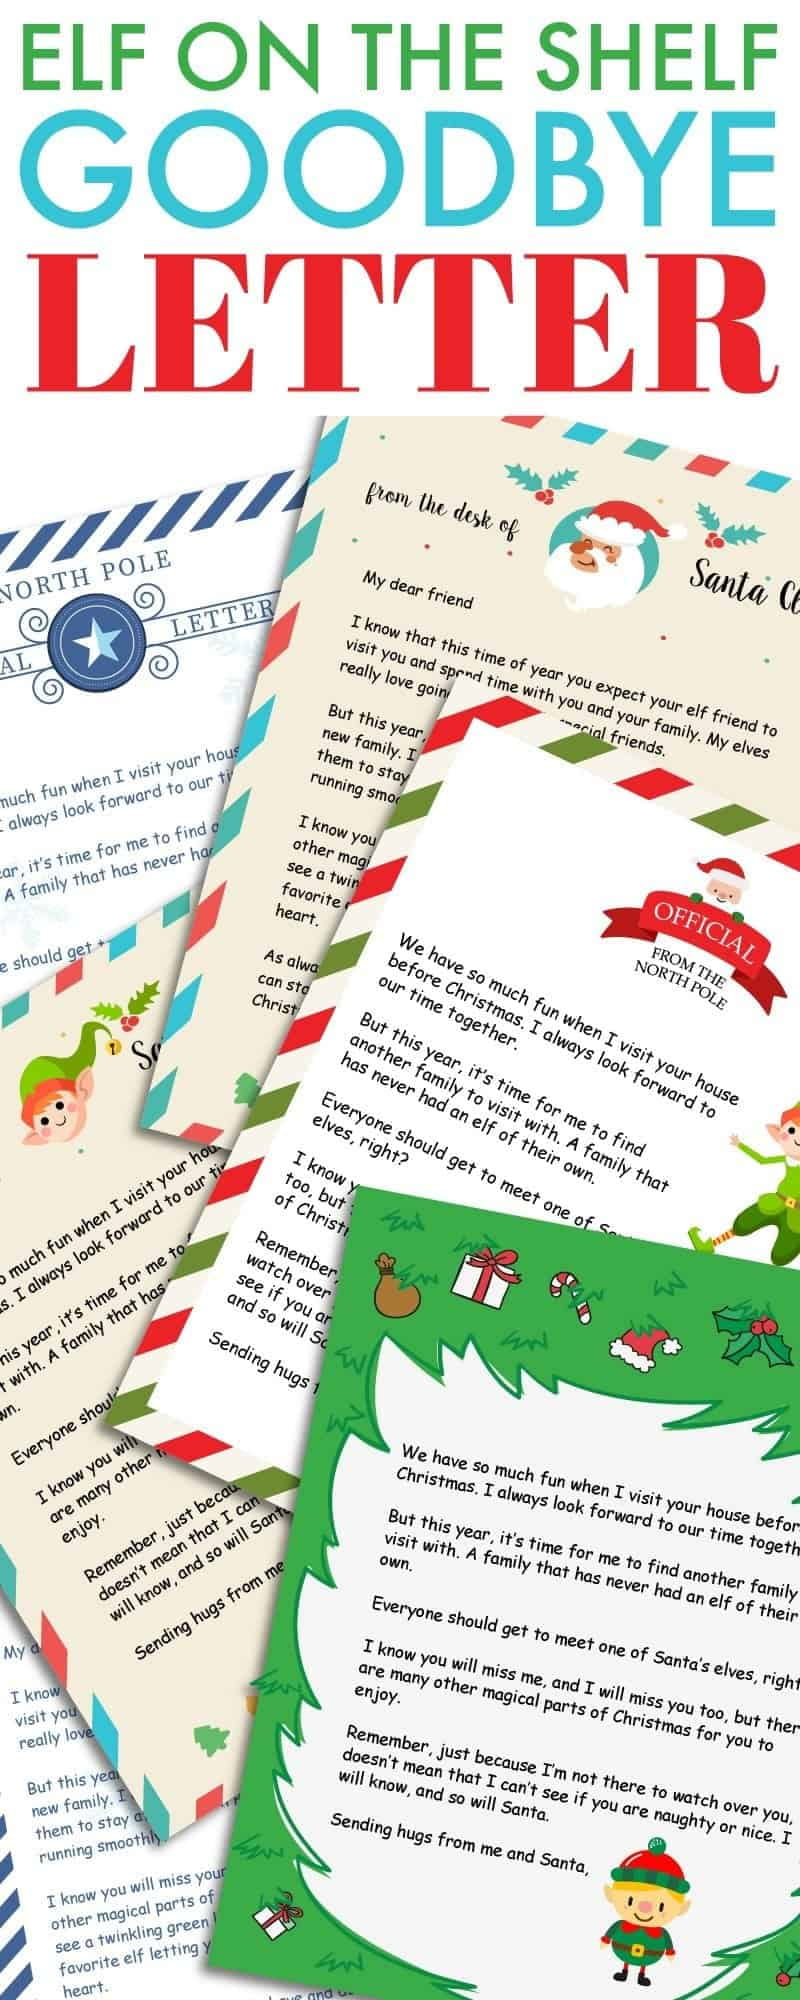 Are you tired of the effort involved in the Christmas elf every year? This Elf on the shelf goodbye letter will help him say goodbye for good.